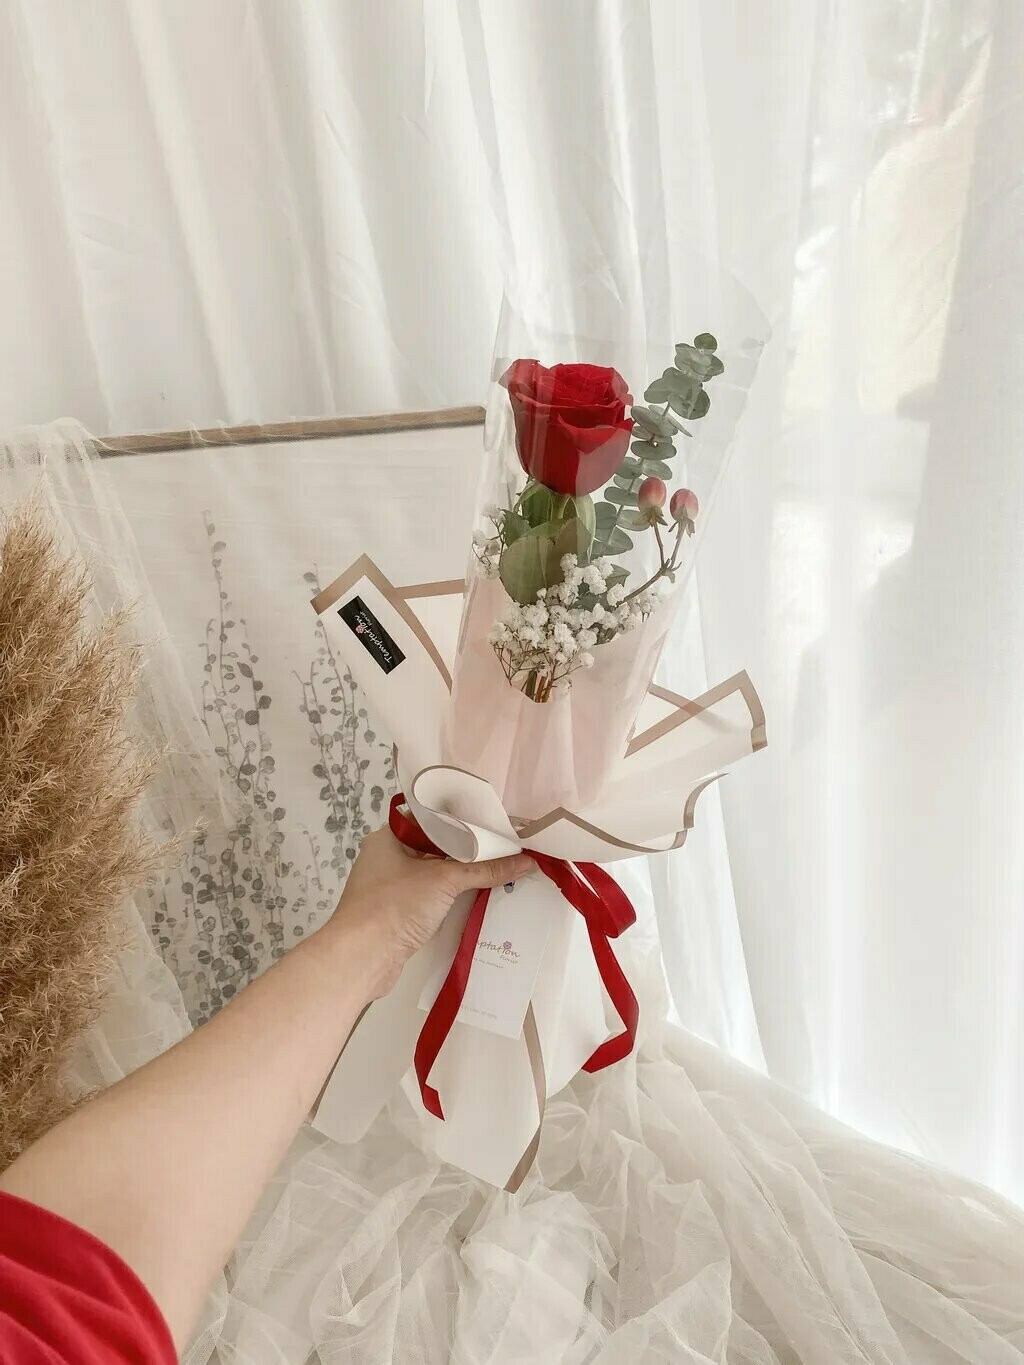 Only One (By: Temptation Florist from Seremban)